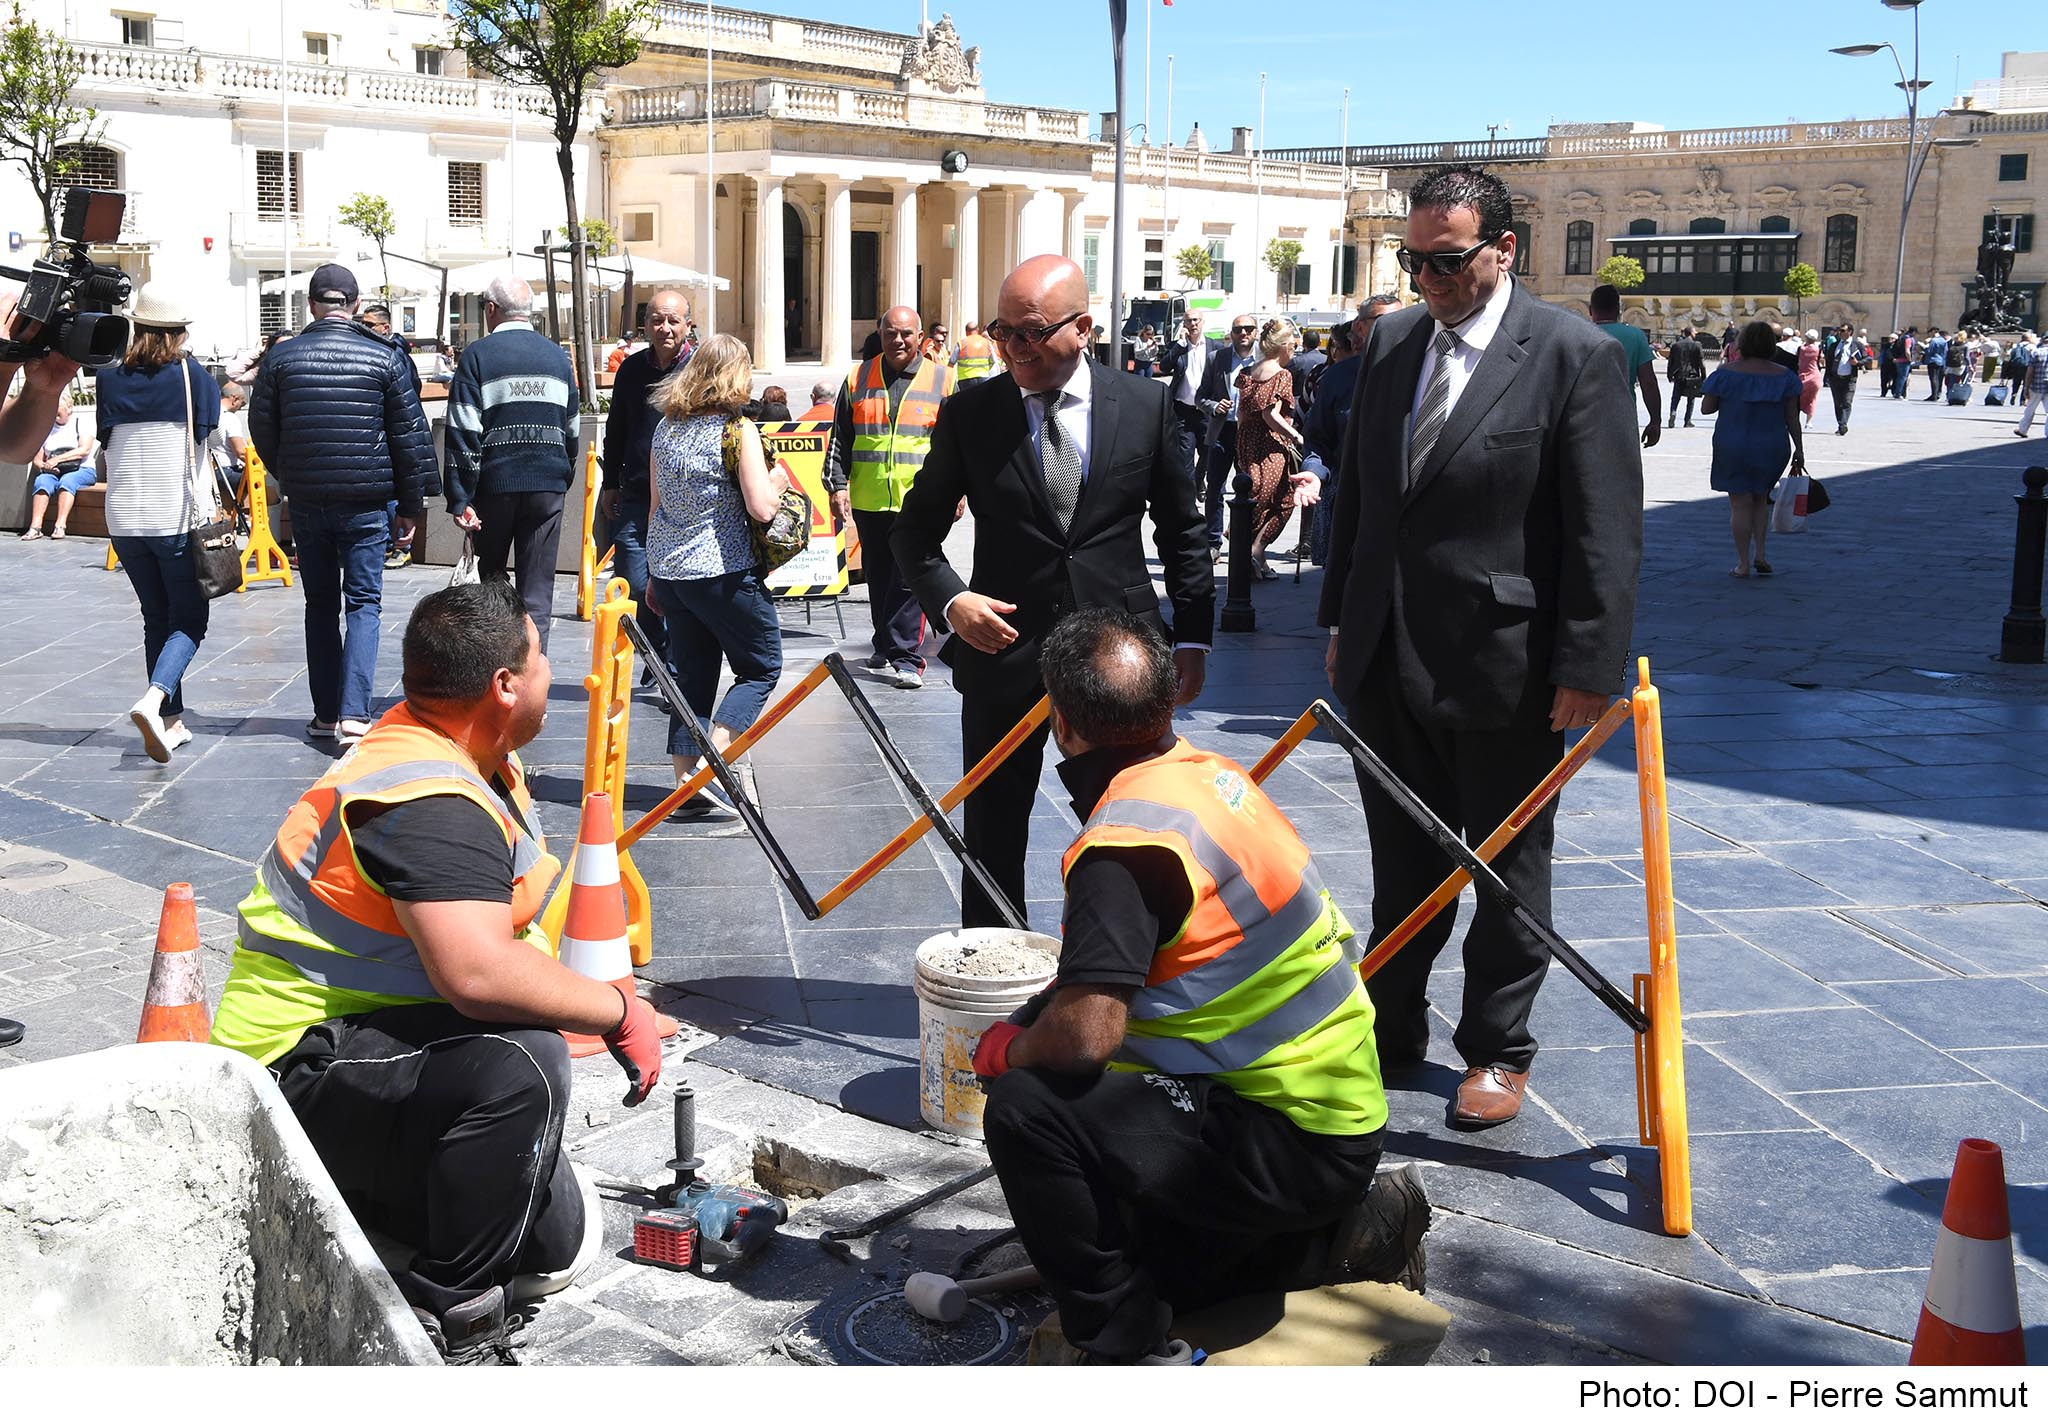 PRESS RELEASE BY THE MINISTRY FOR JUSTICE, CULTURE AND LOCAL GOVERNMENT AND THE PARLIAMENTARY SECRETARIAT FOR CONSUMER RIGHTS, PUBLIC CLEANSING AND SUPPORT FOR THE CAPITAL More than €250,000 investment for cleansing and maintenance for the upkeep of Vall